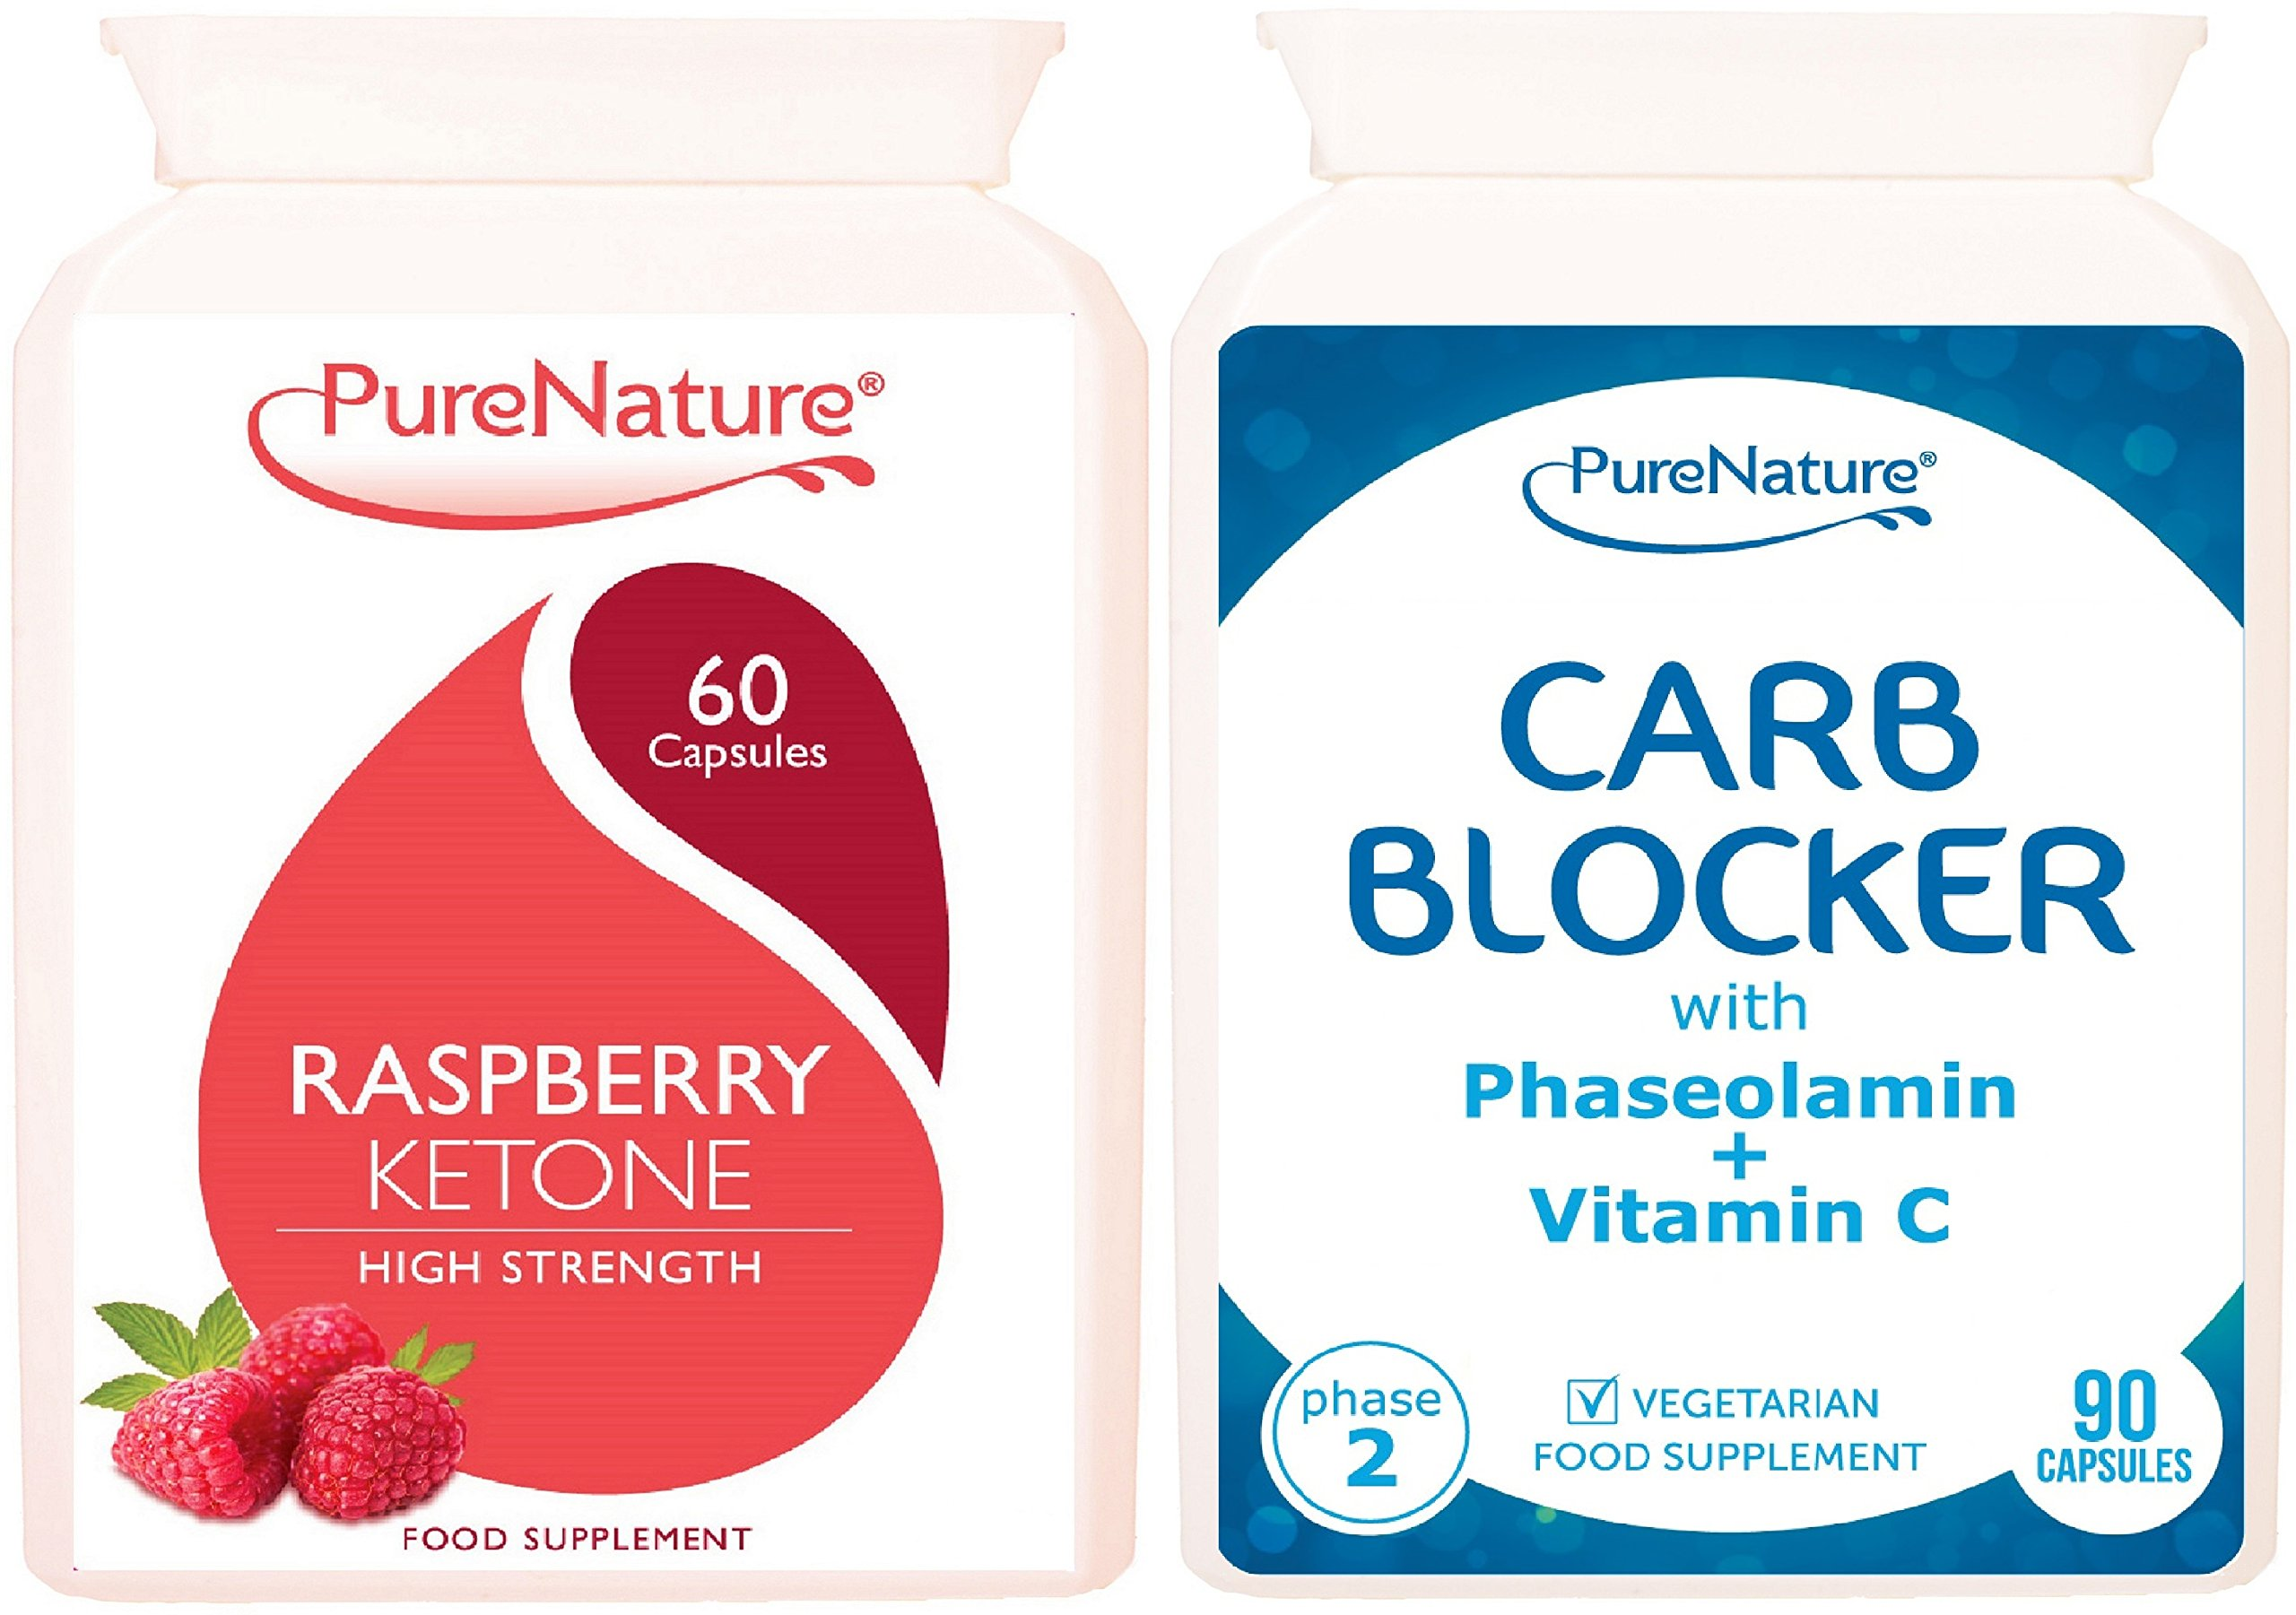 Raspberry Ketone 100% Highly Concentrated 12000mg Daily Serving UK's MAXIMUM Strength Plus Carb Blocker with White Kidney Bean Extract & Phaseolamin Phase 2 High Strength Carb Controller & Starch Bloc